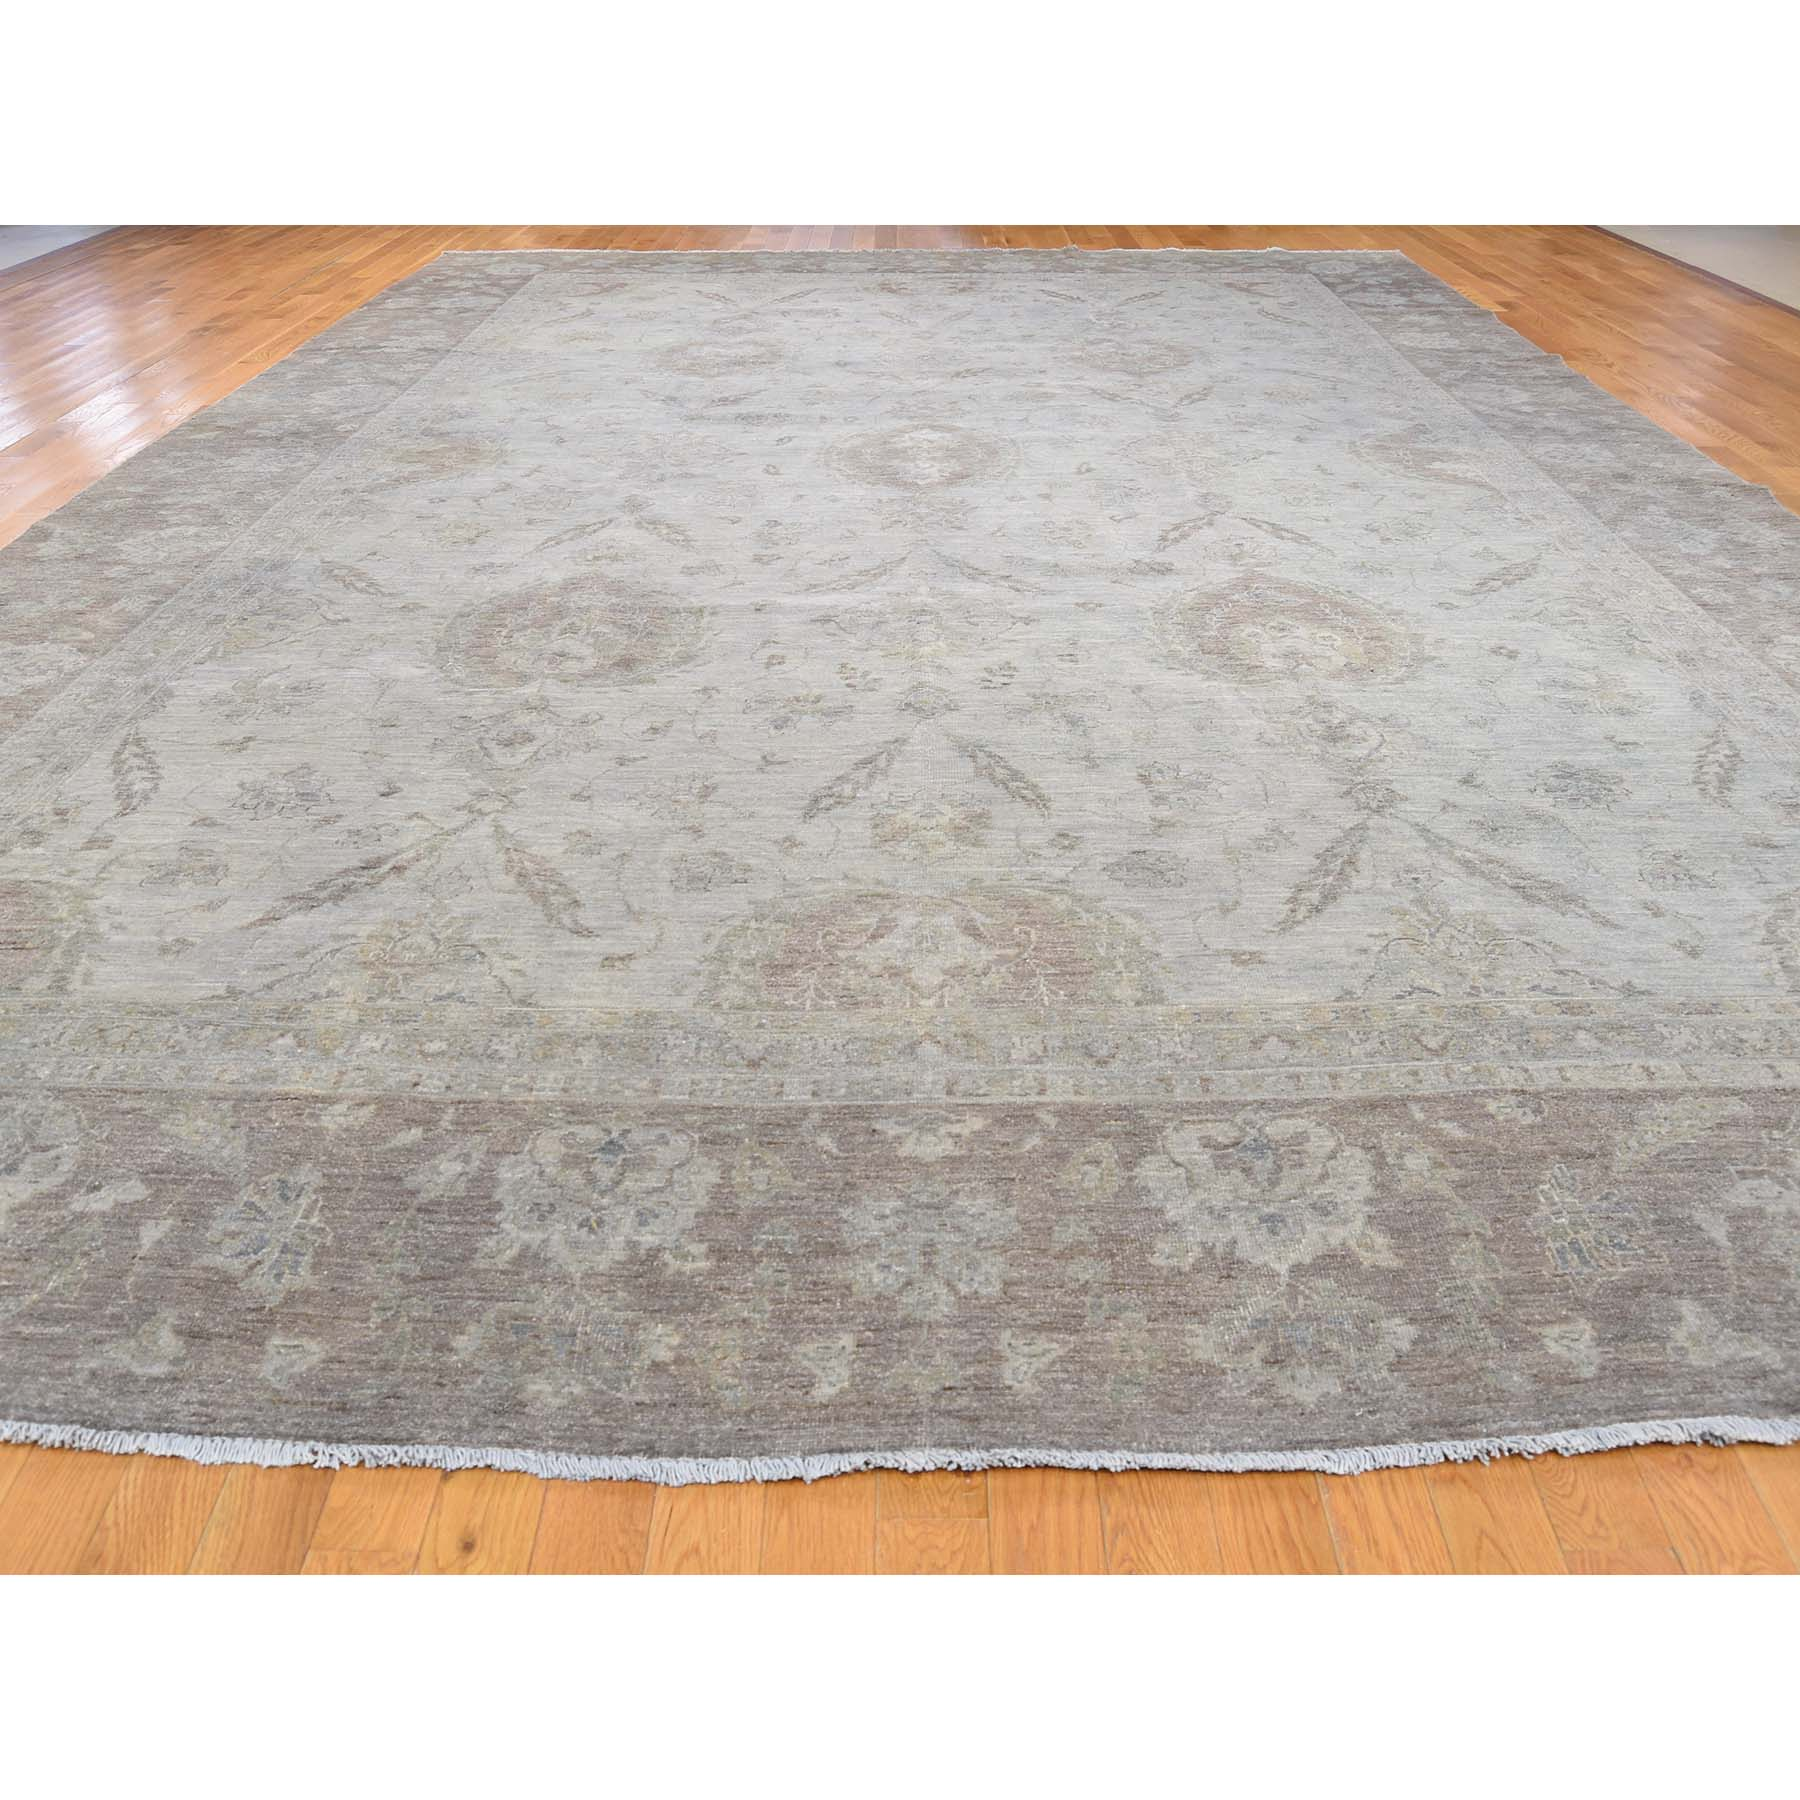 11-10 x17-5  Peshawar Silver Wash Oversize Hand-Knotted Oriental Rug